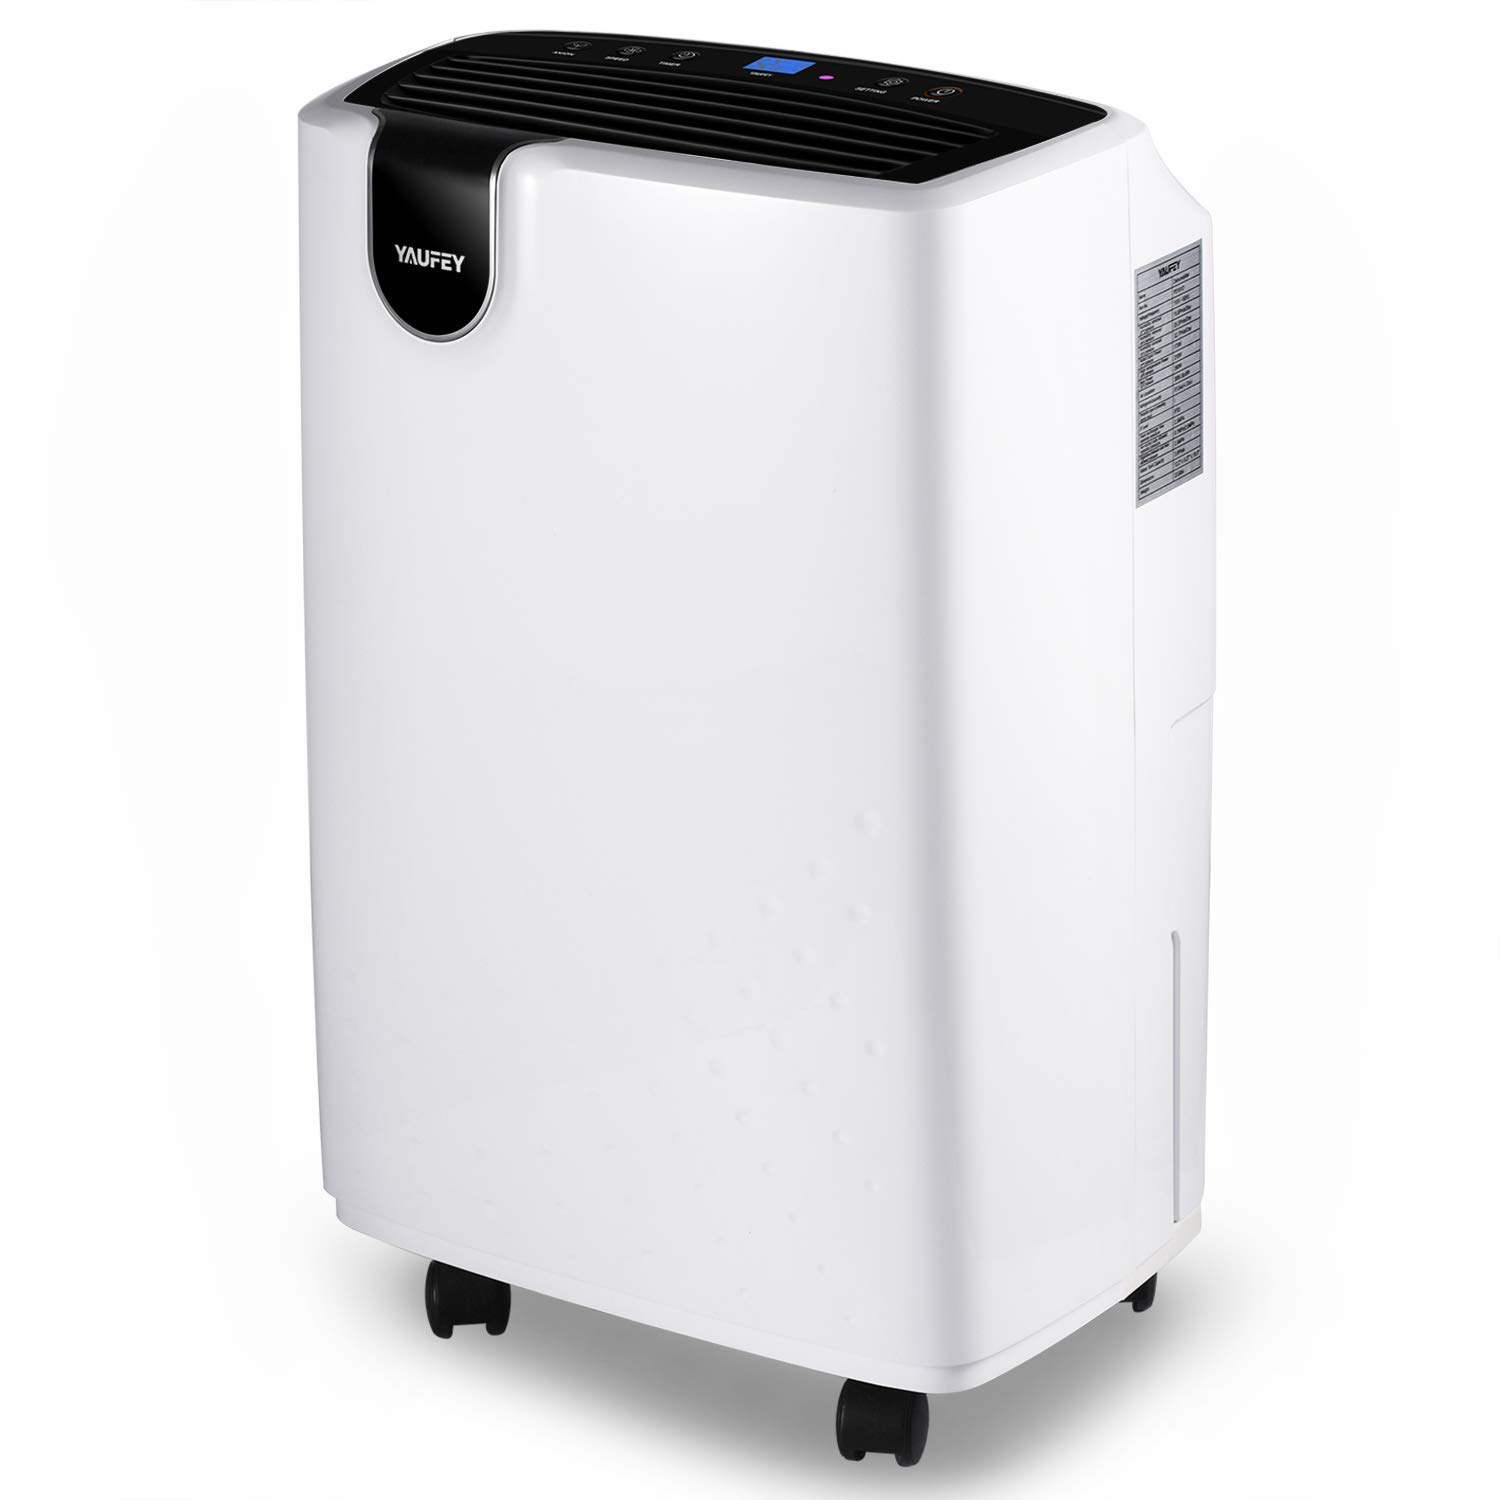 Yaufey 30 Pint Dehumidifier for Home Basements Bedroom Garage, 4 Gallons/Day Working Capacity, with 0.47 Gallon Water Tank, Continuous Drain Hose and Wheel Spaces up to 1500 Sq Ft